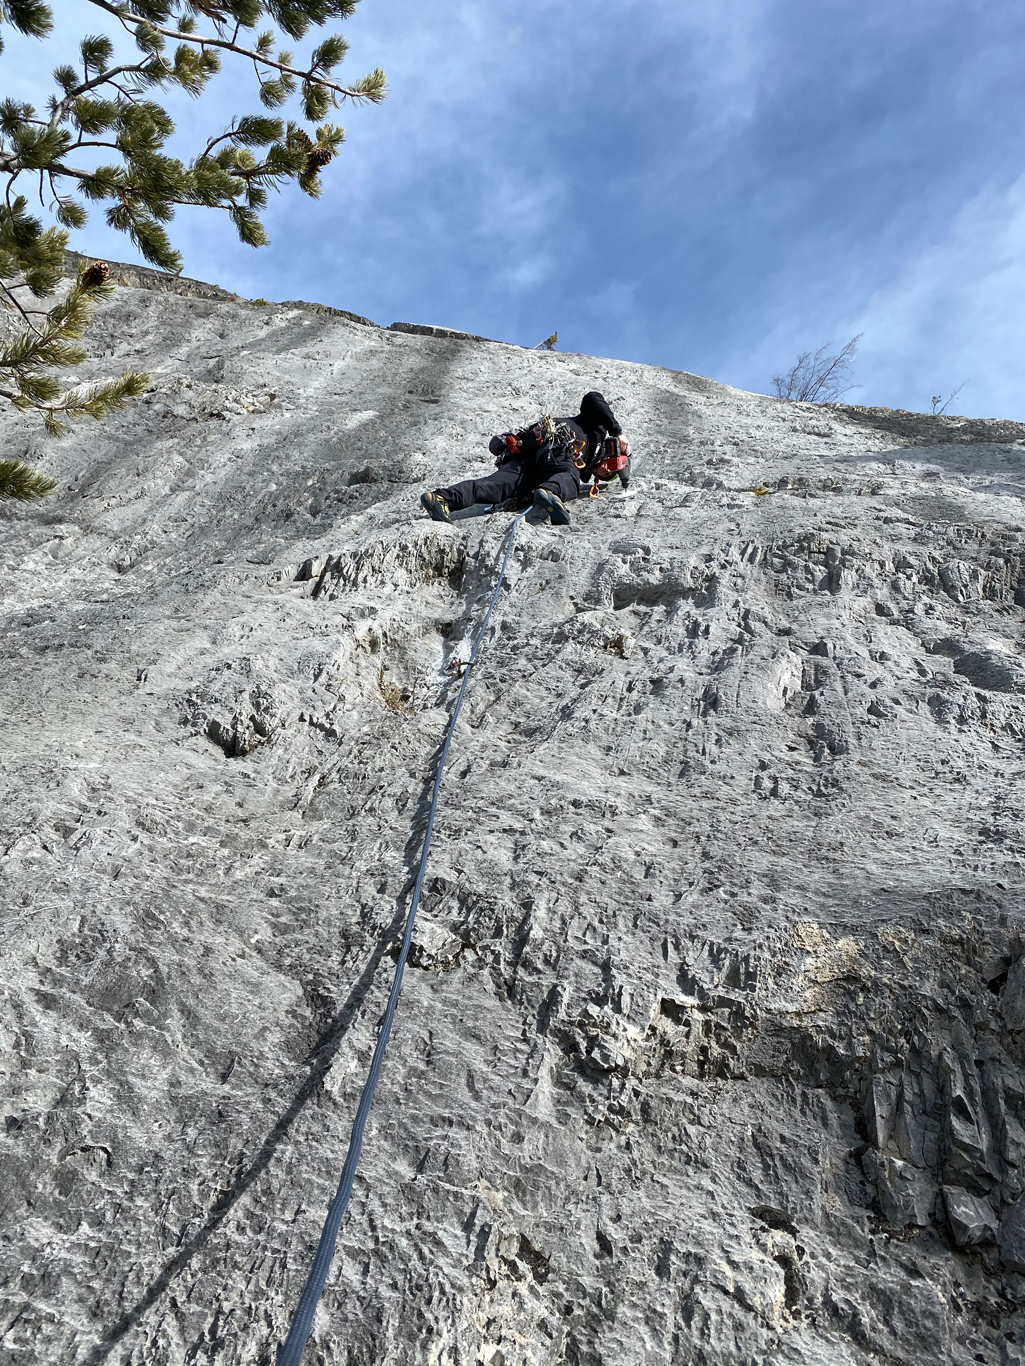 Andrew climbing pitch 1 of Dumbo